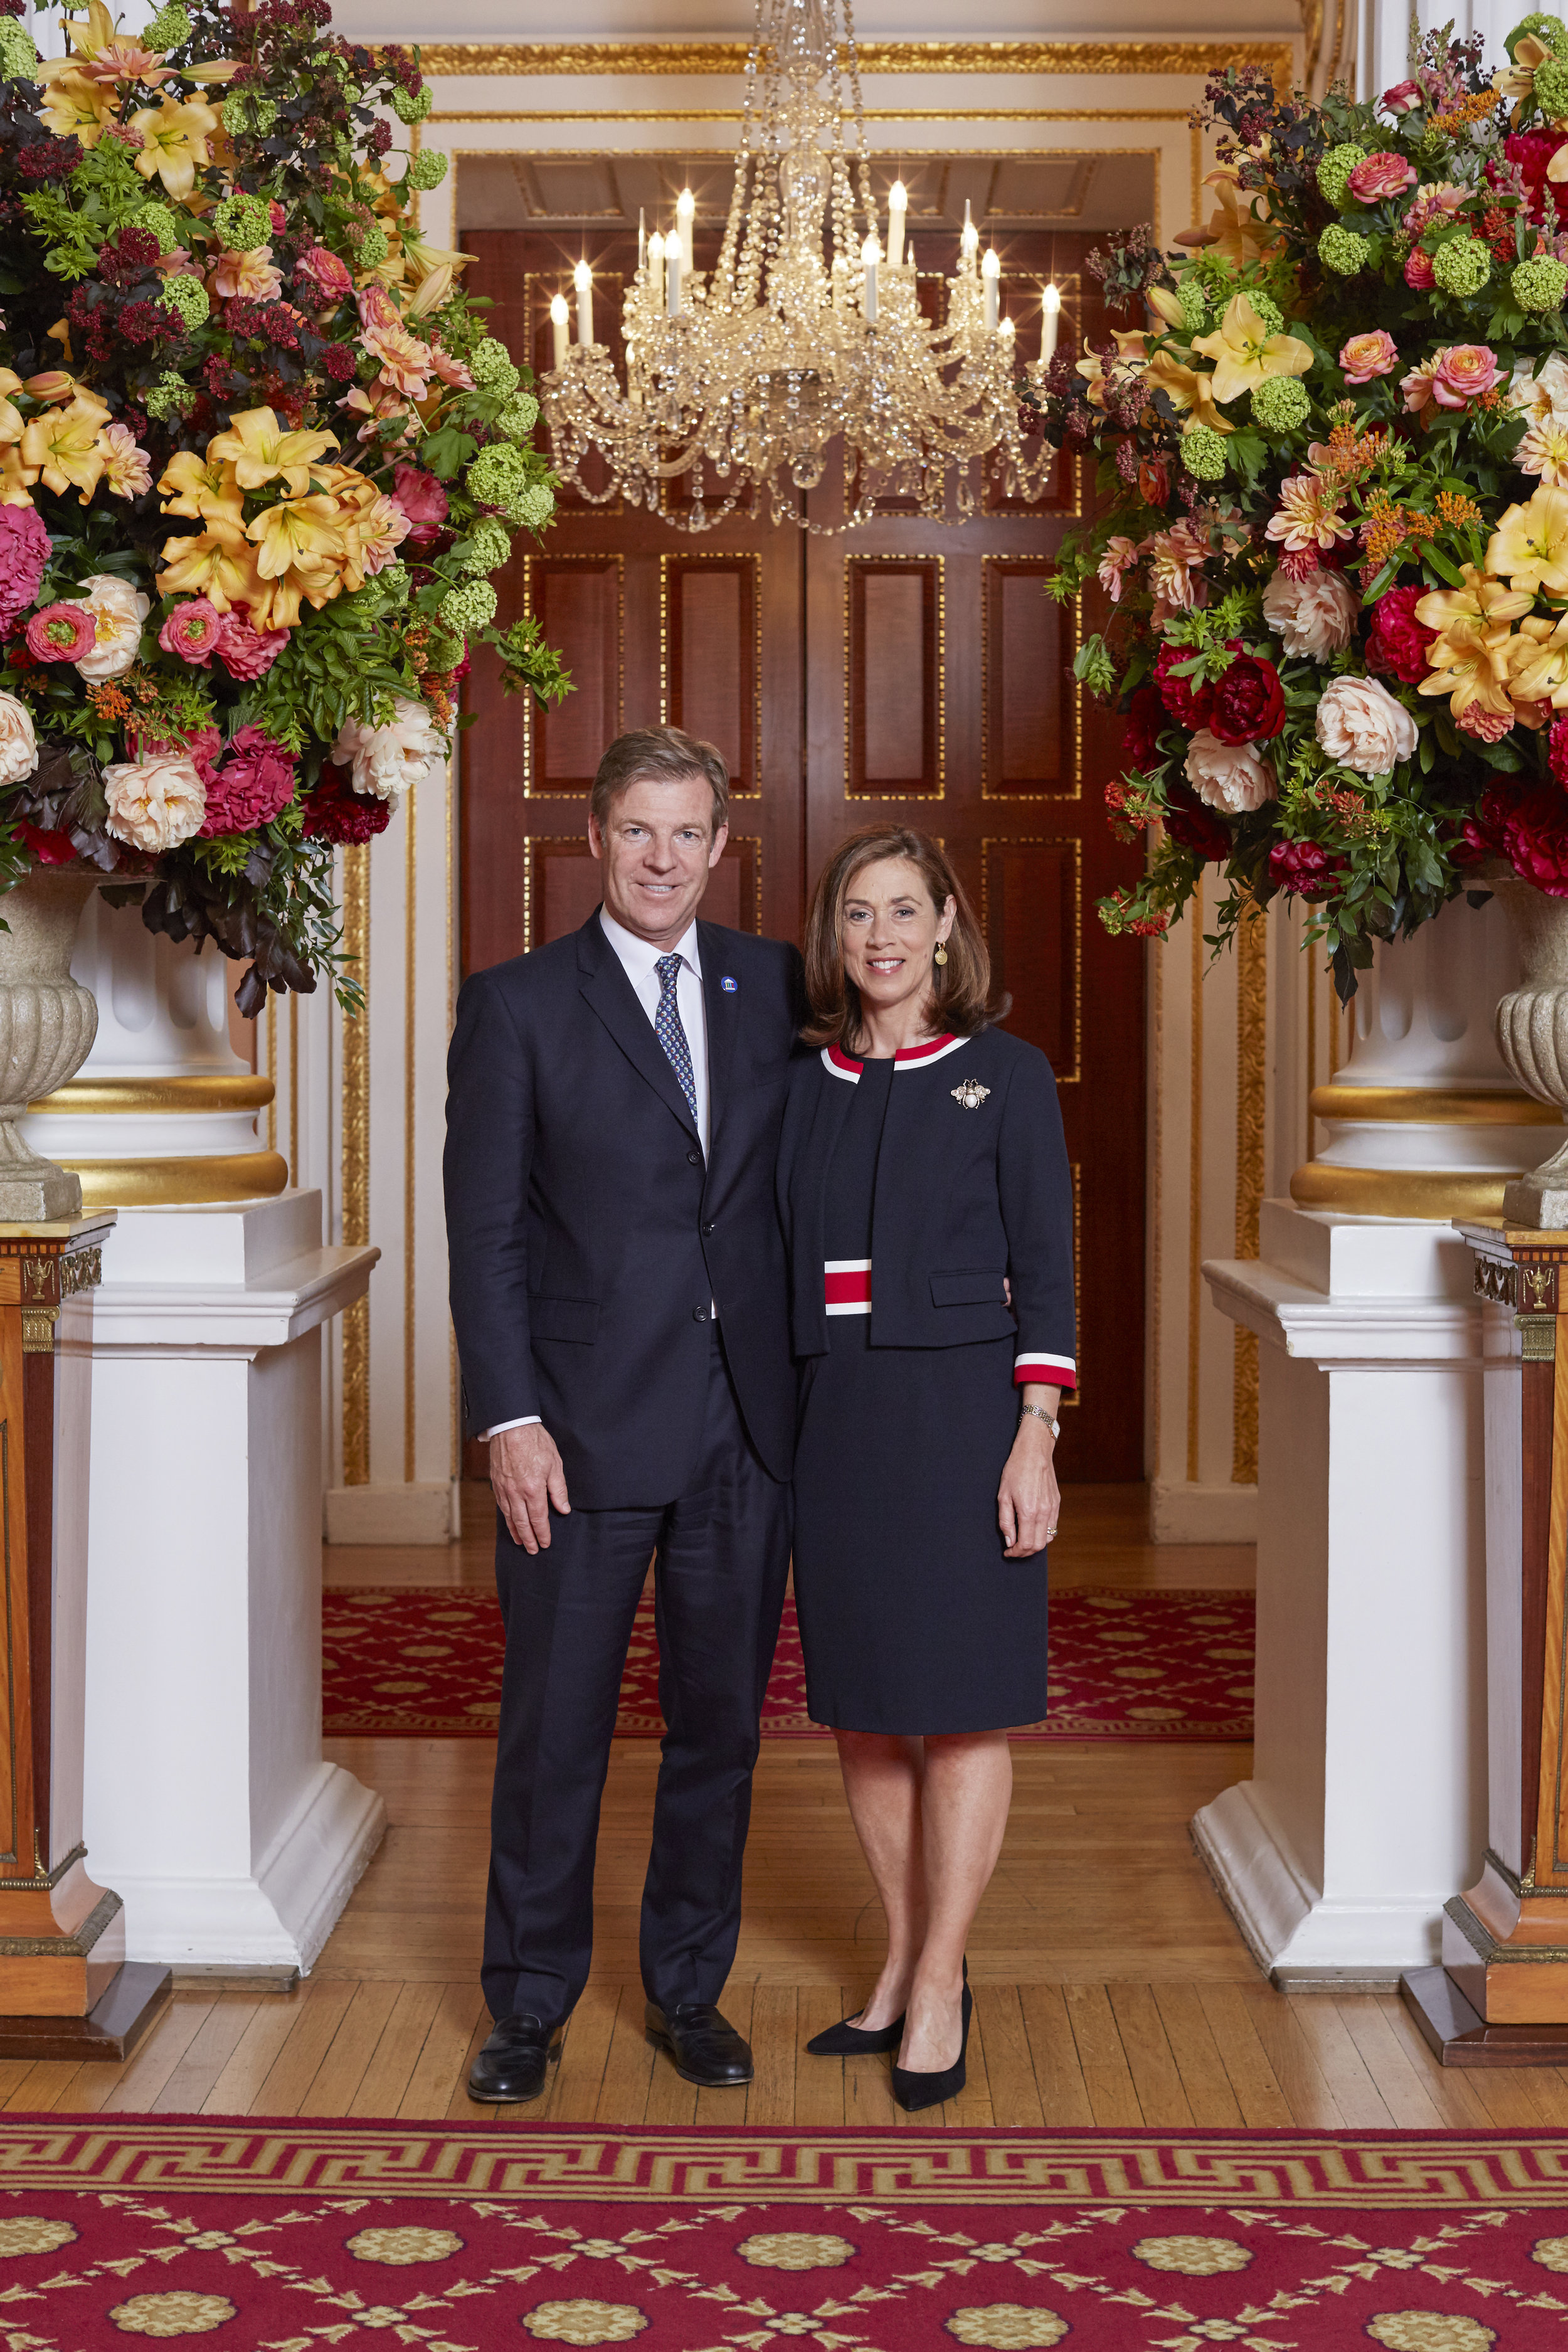 William with Hilary in The Lord Mayor's residence, Mansion House.